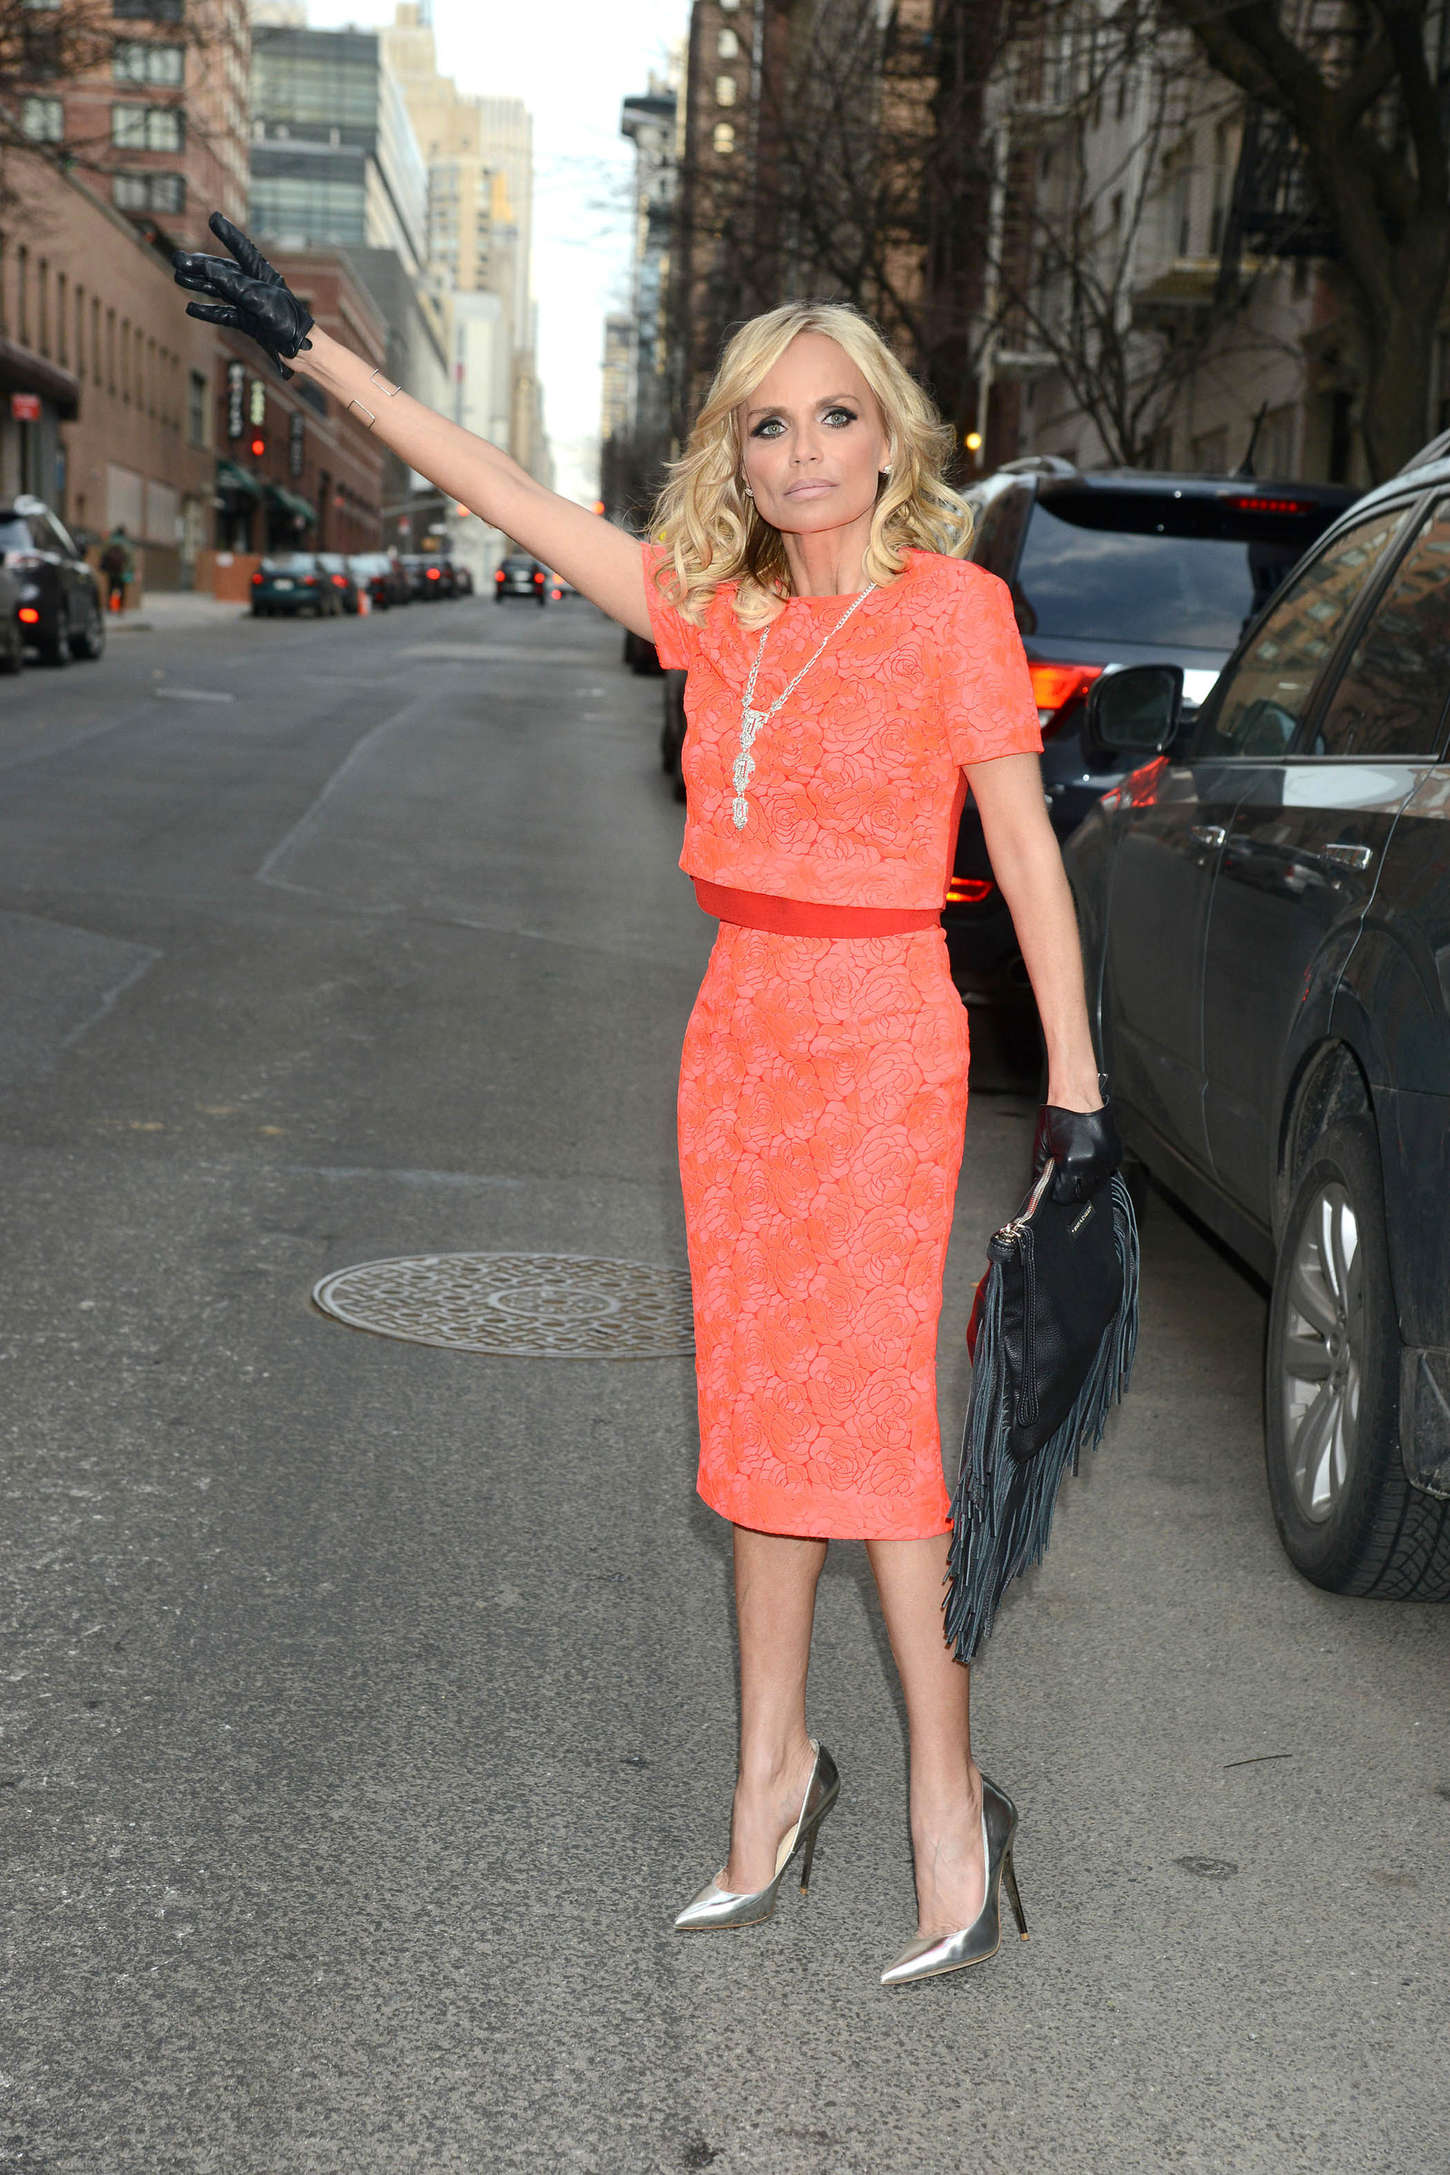 Kristin Chenoweth On Her Way To The Street in New York City